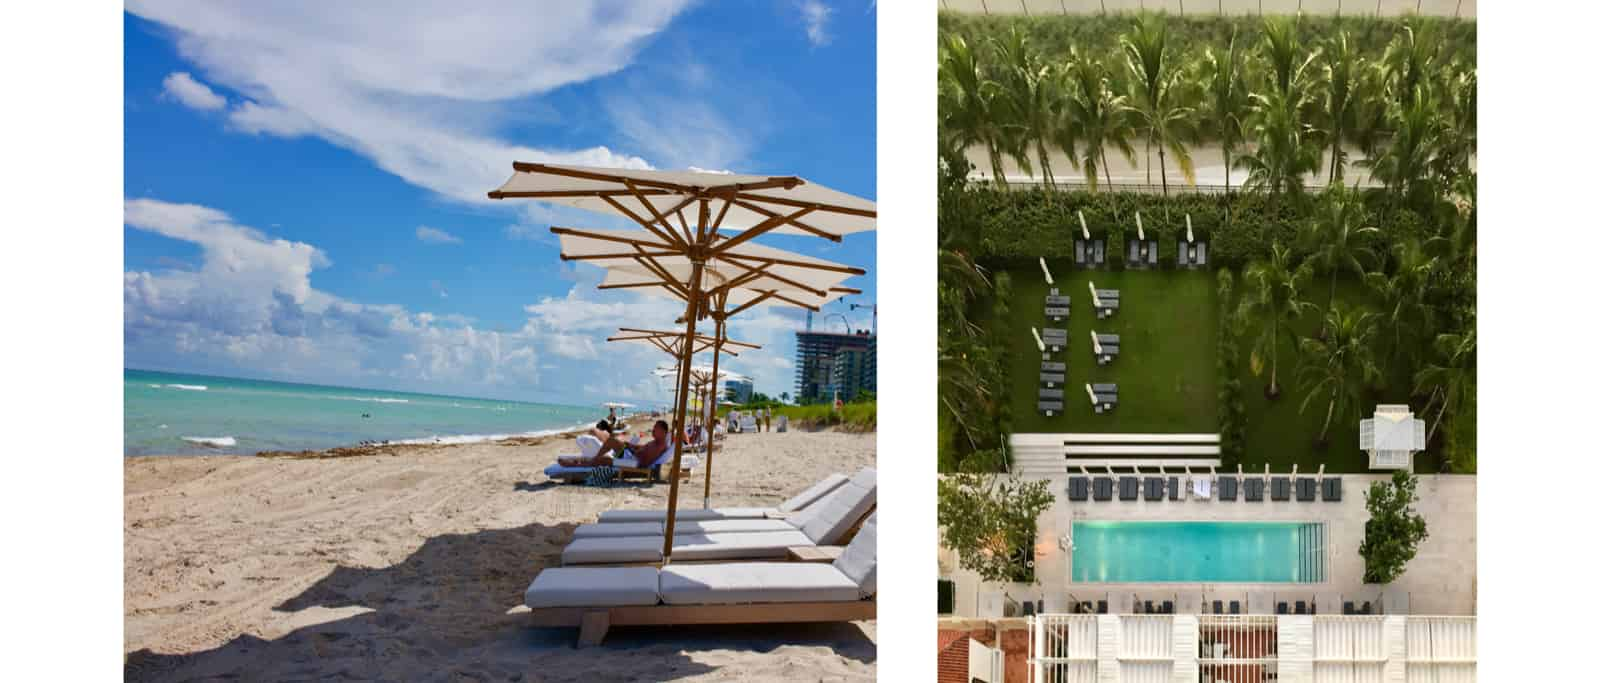 Two images from left to right. The left one is of some loungers on the beach protected by numerous umbrellas, wiht some more about 20ft away. The right one is an overhead view of a pool with chairs all around, and some landscaping between it and a road.